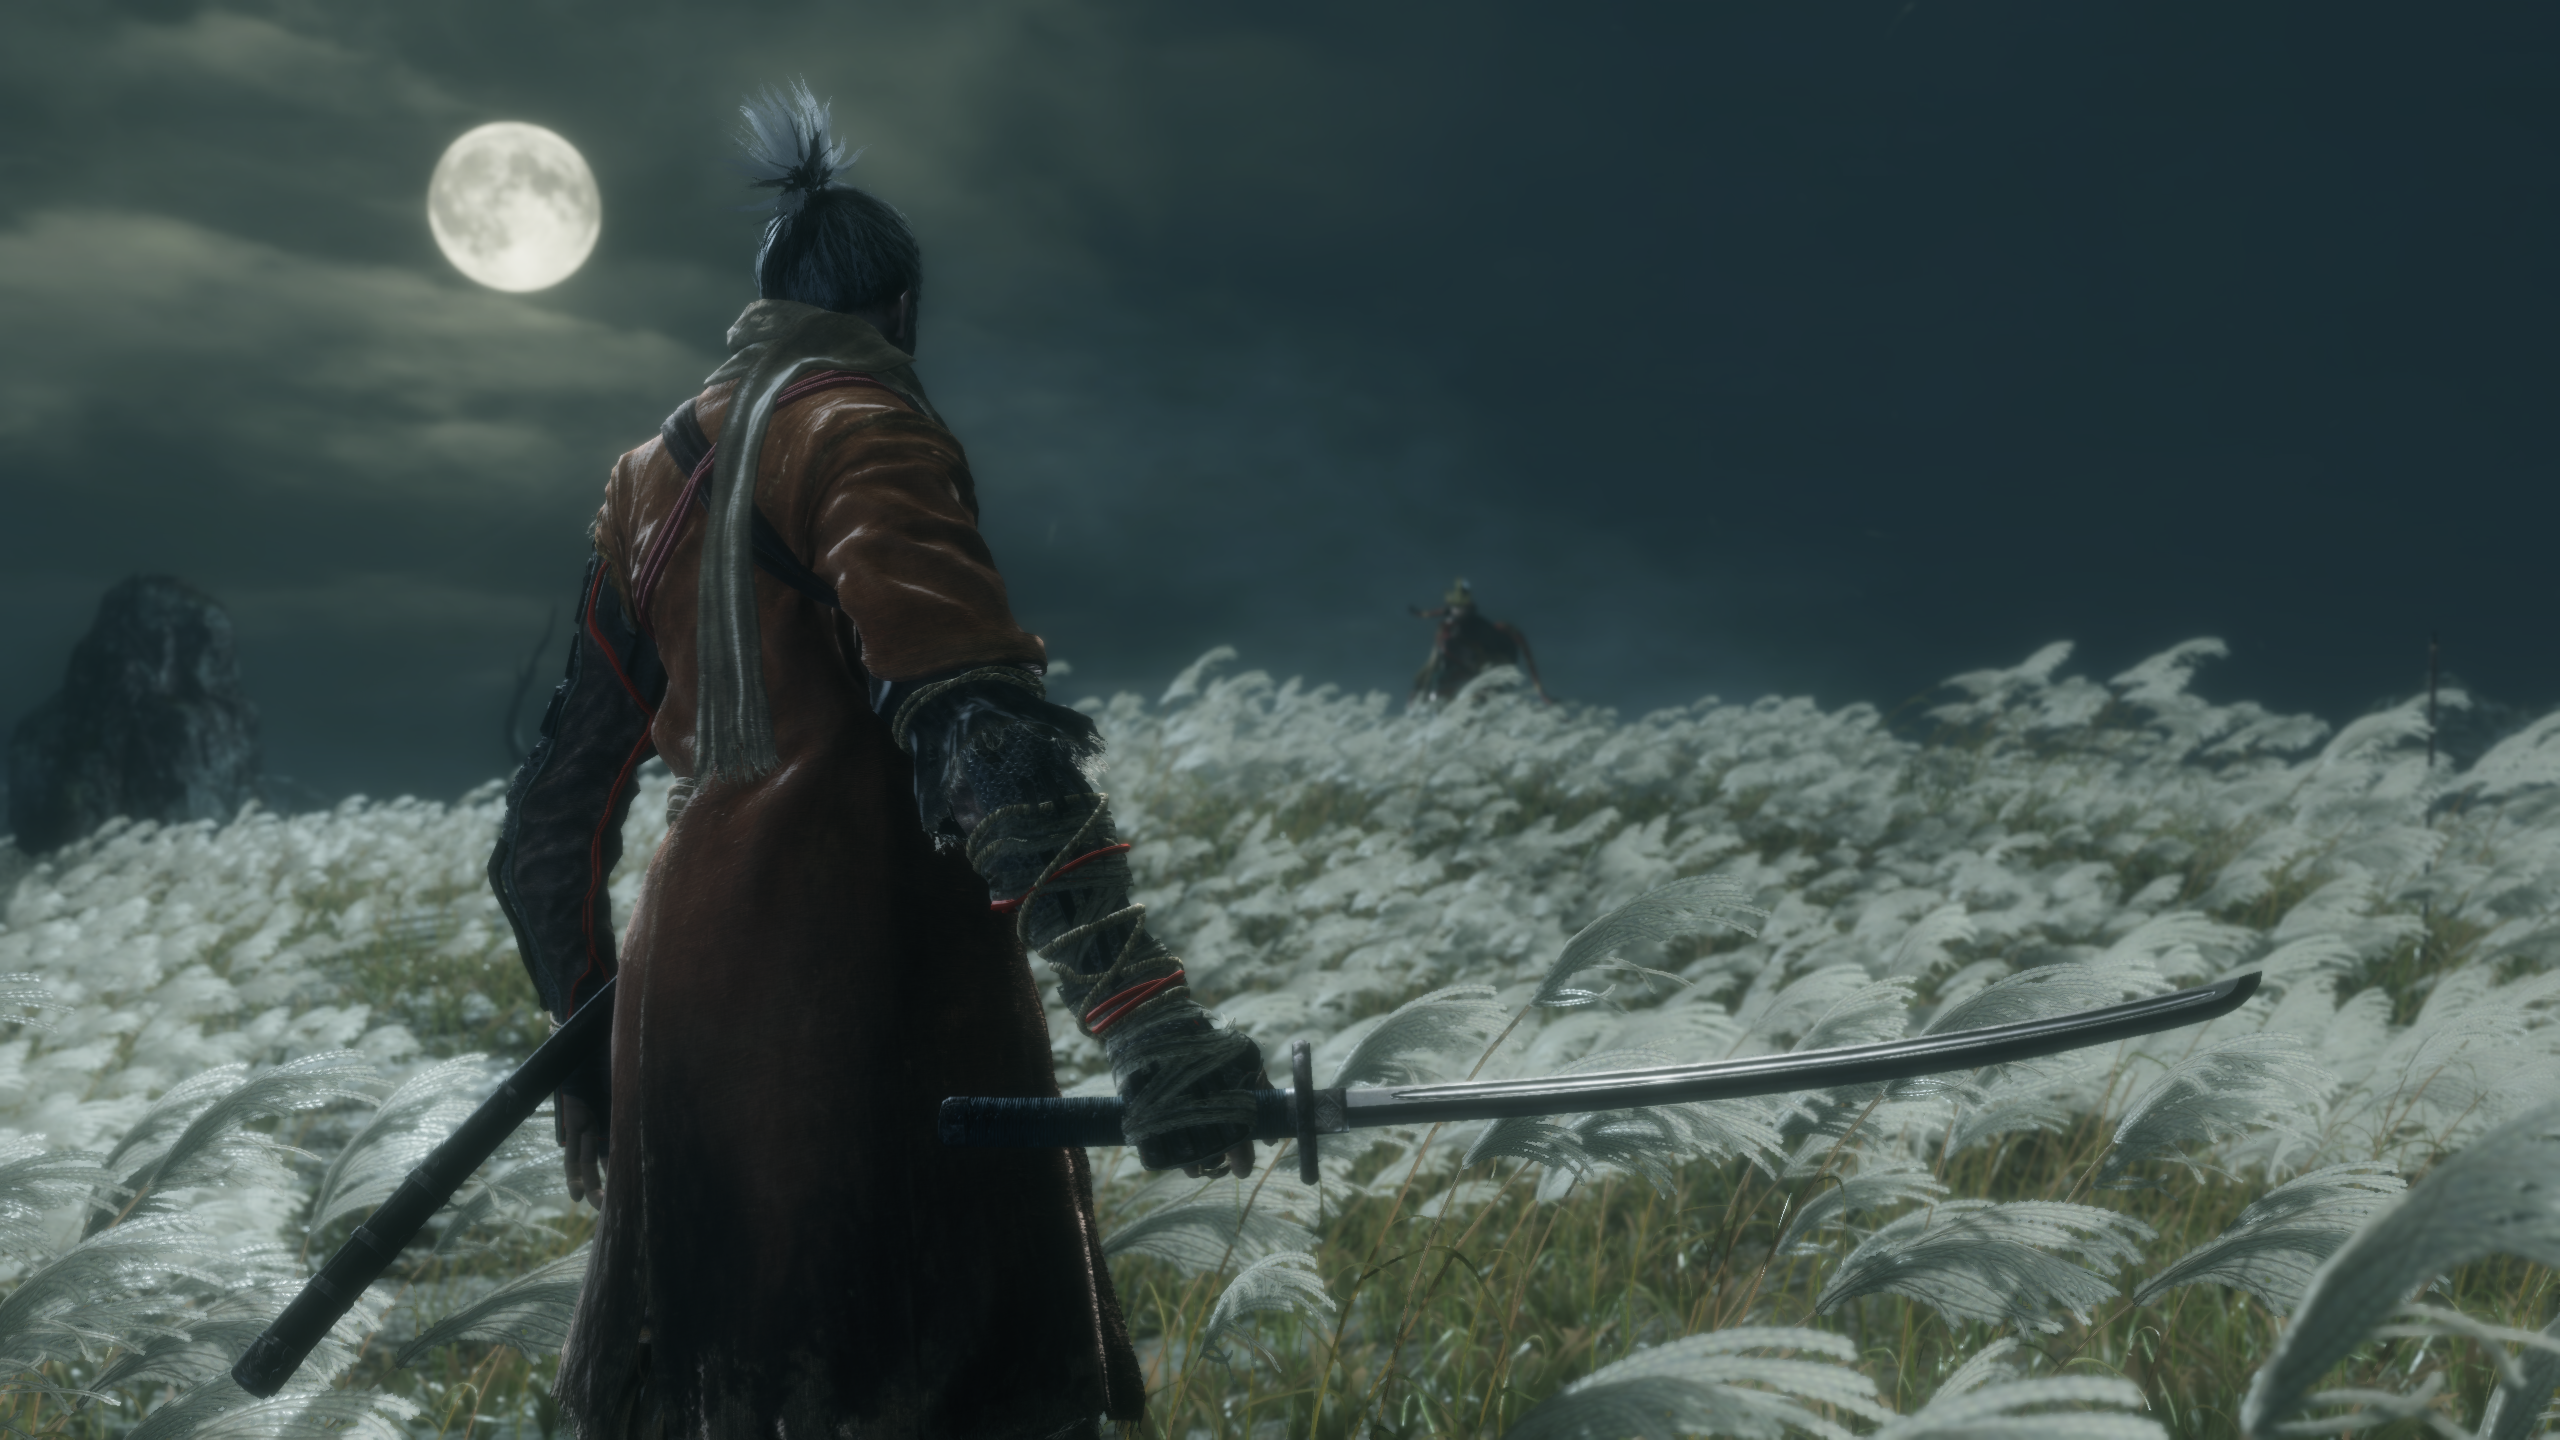 IMAGE(http://www.shadout.dk/games/andre/sekiro1.png)